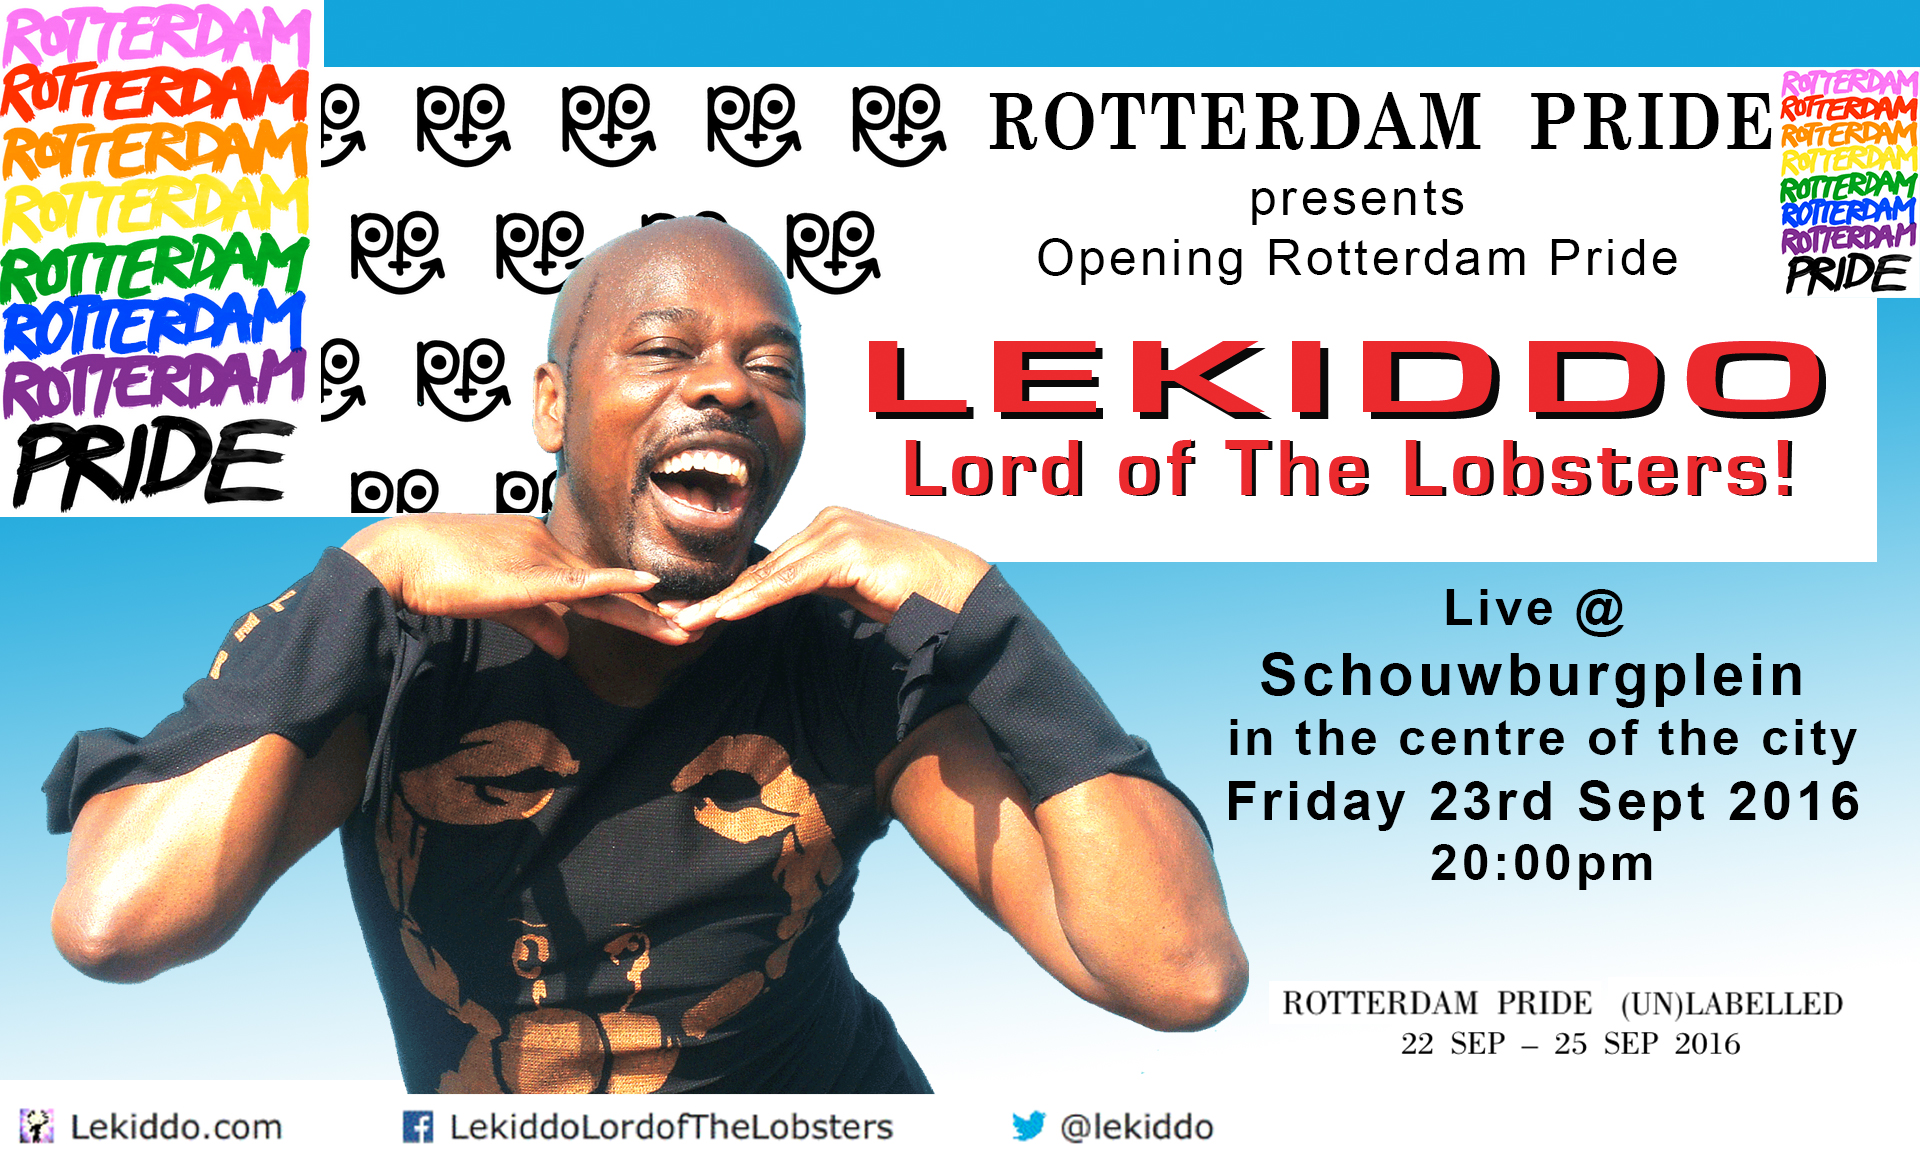 LEKIDDO - Lord of The Lobsters! live at Rotterdam Pride, Friday 23 Sept 2016, at Schouwburgplein, Rotterdam, Netherlands  #PinchyPinchykisskiss